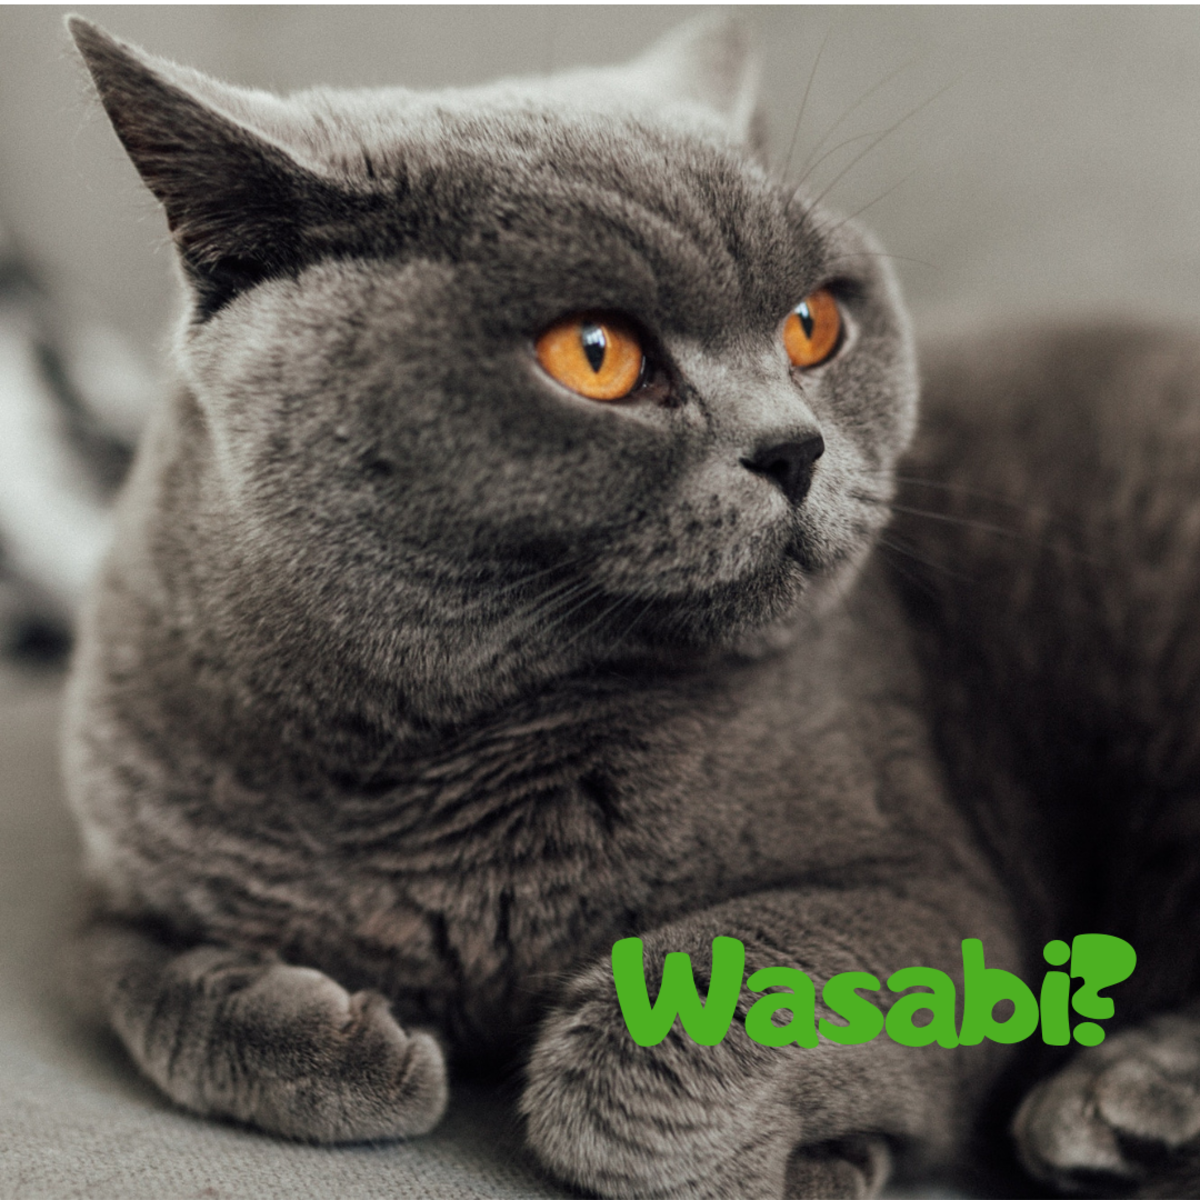 Is he a Wasabi?